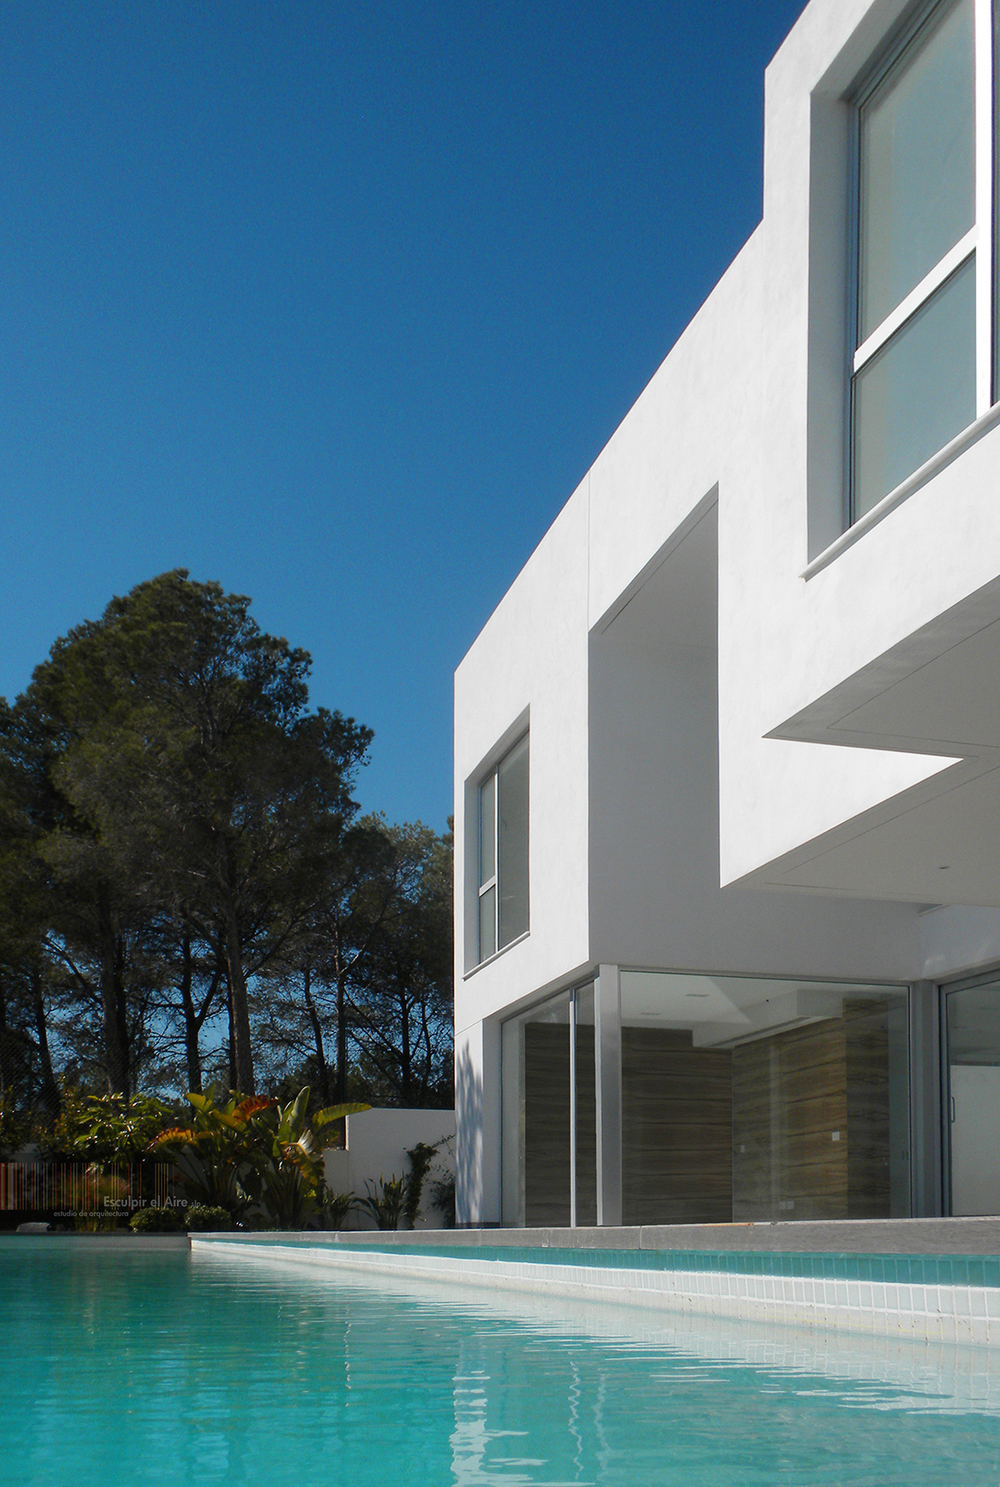 The Water House: Esculpir el Aire Sculpt Contemporary Spanish Dwelling